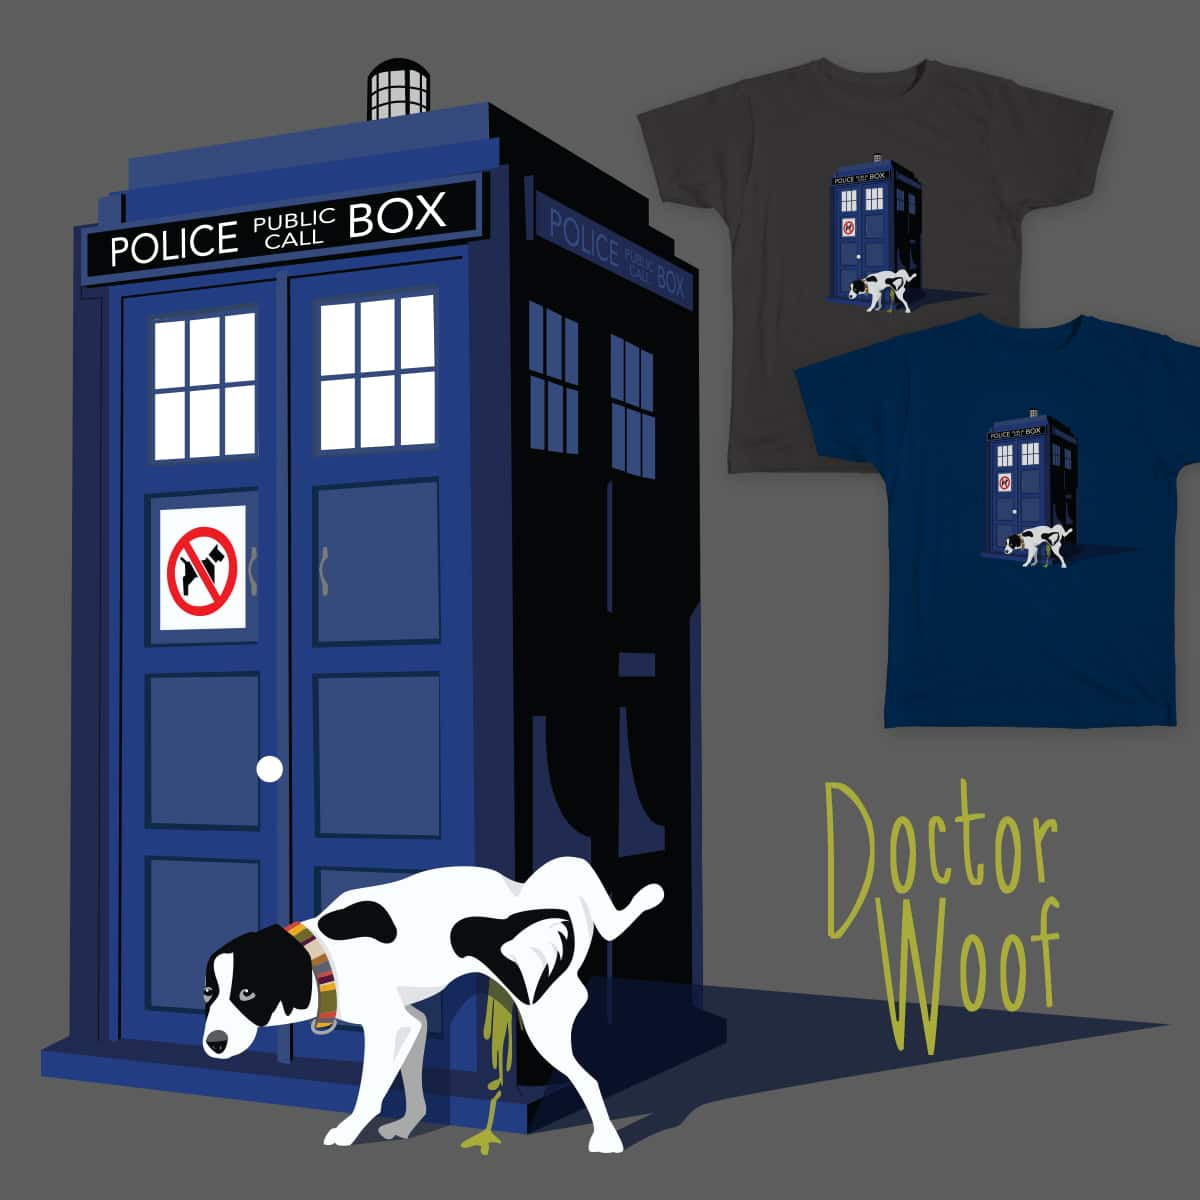 Doctor Woof by Hiphiphoera on Threadless